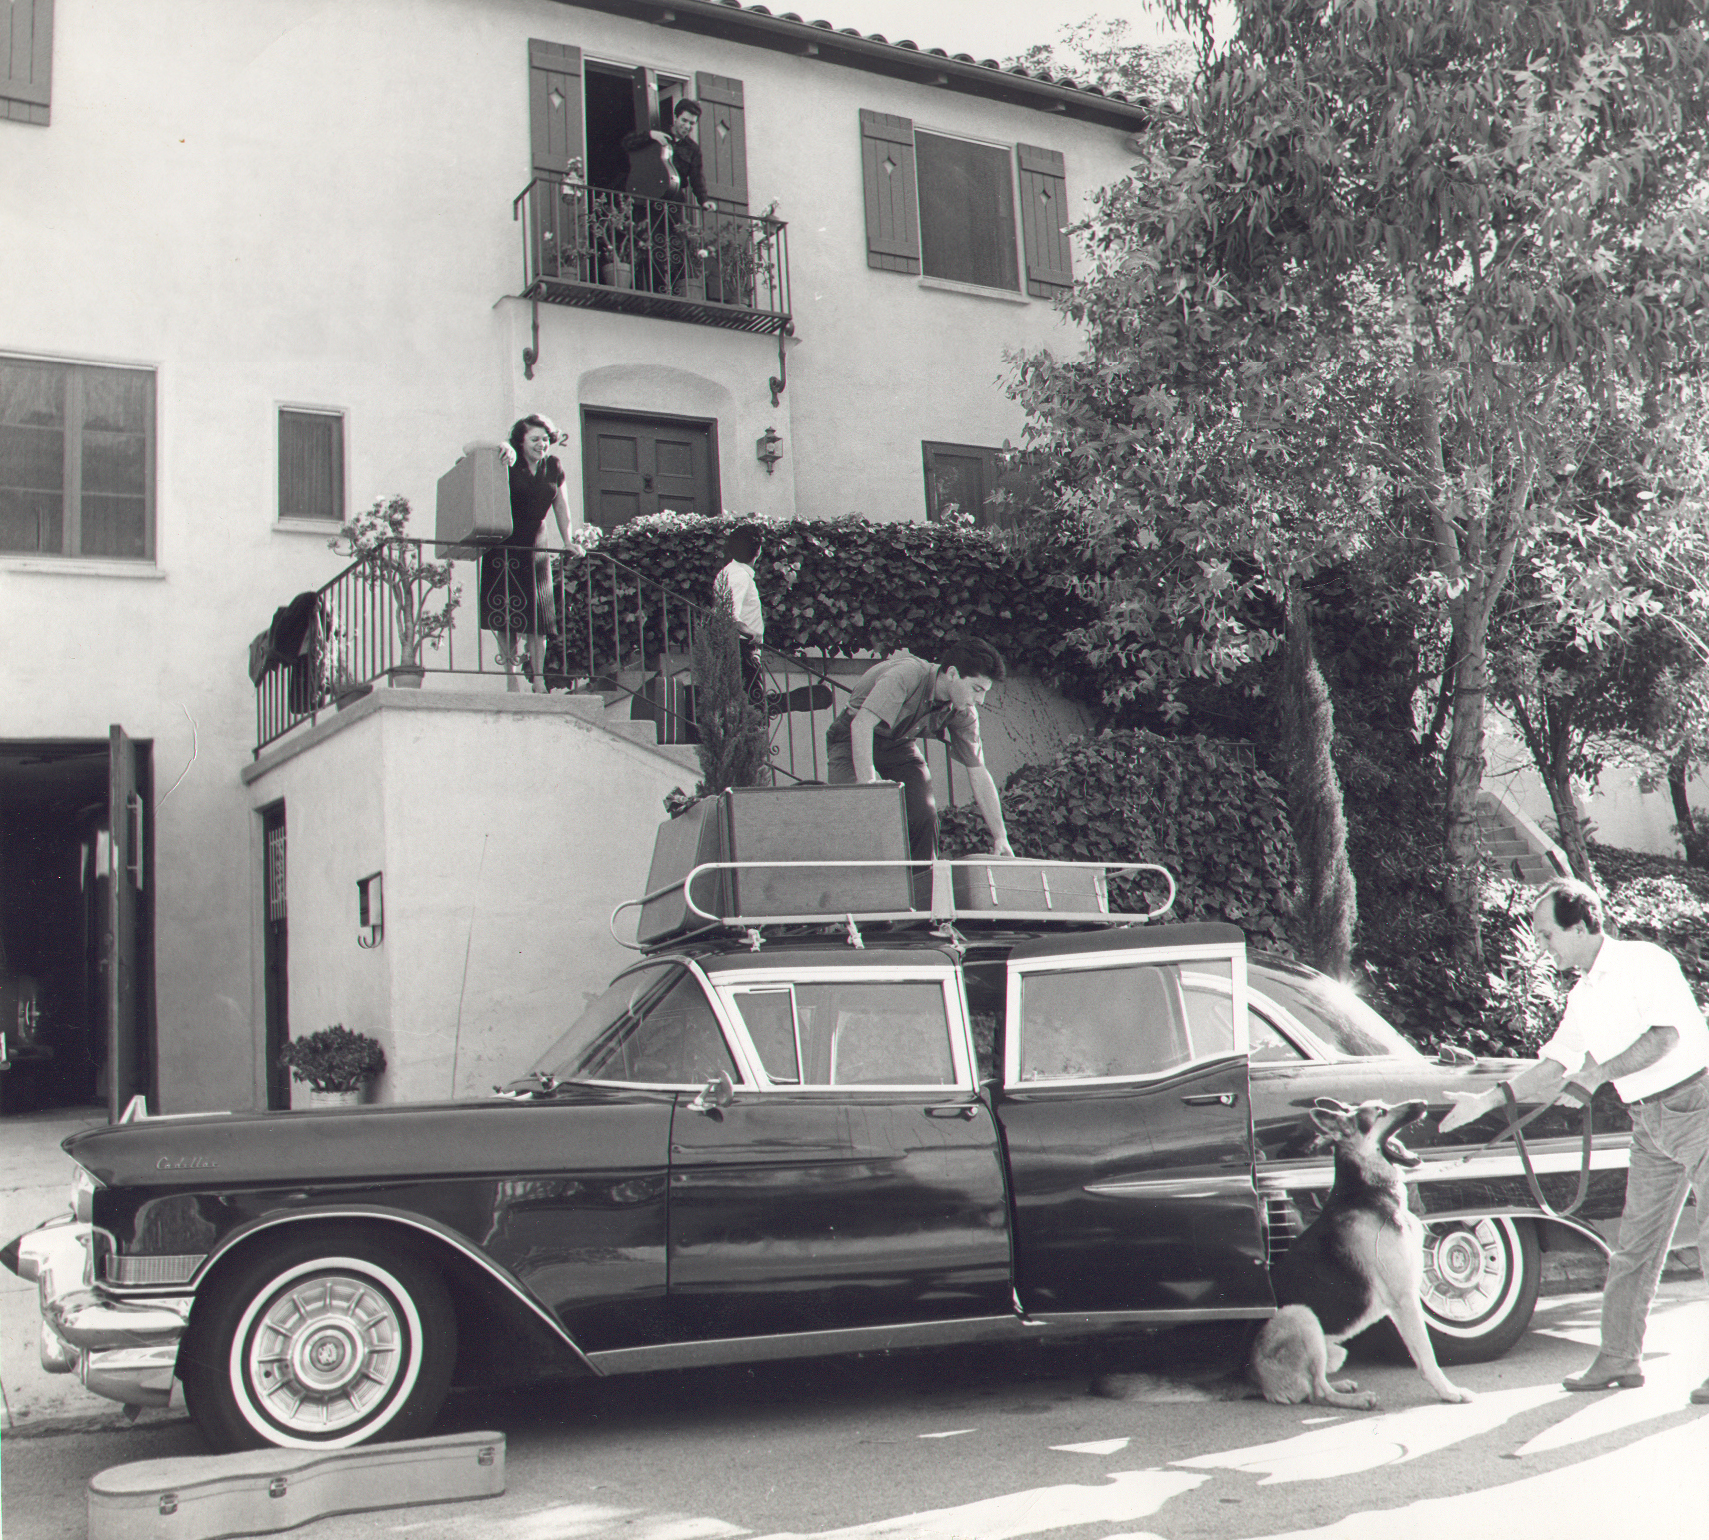 Hollywood 1963 - The family prepares for a long tour